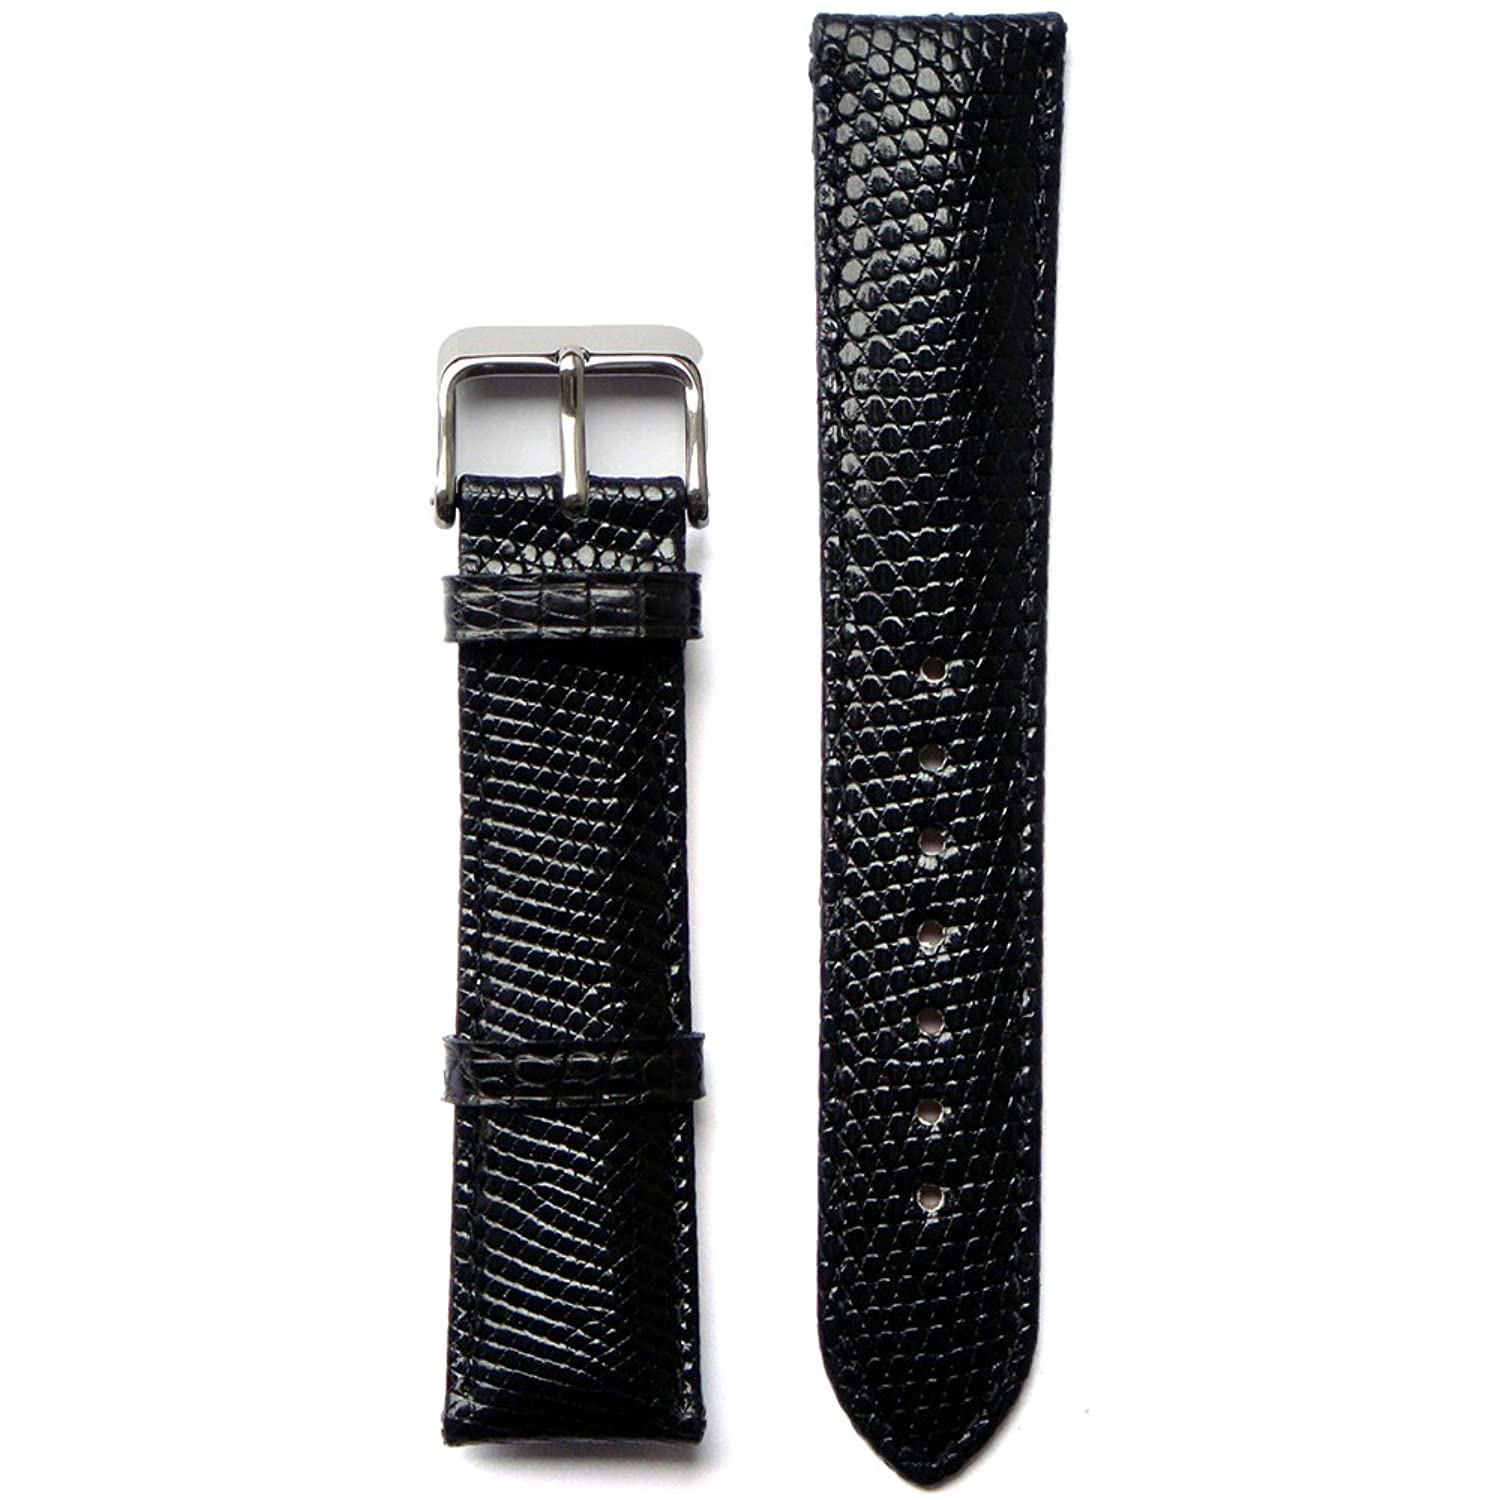 Black 20 Millimeters Genuine Lizard Skin Watch Strap юбки romana юбка suisse